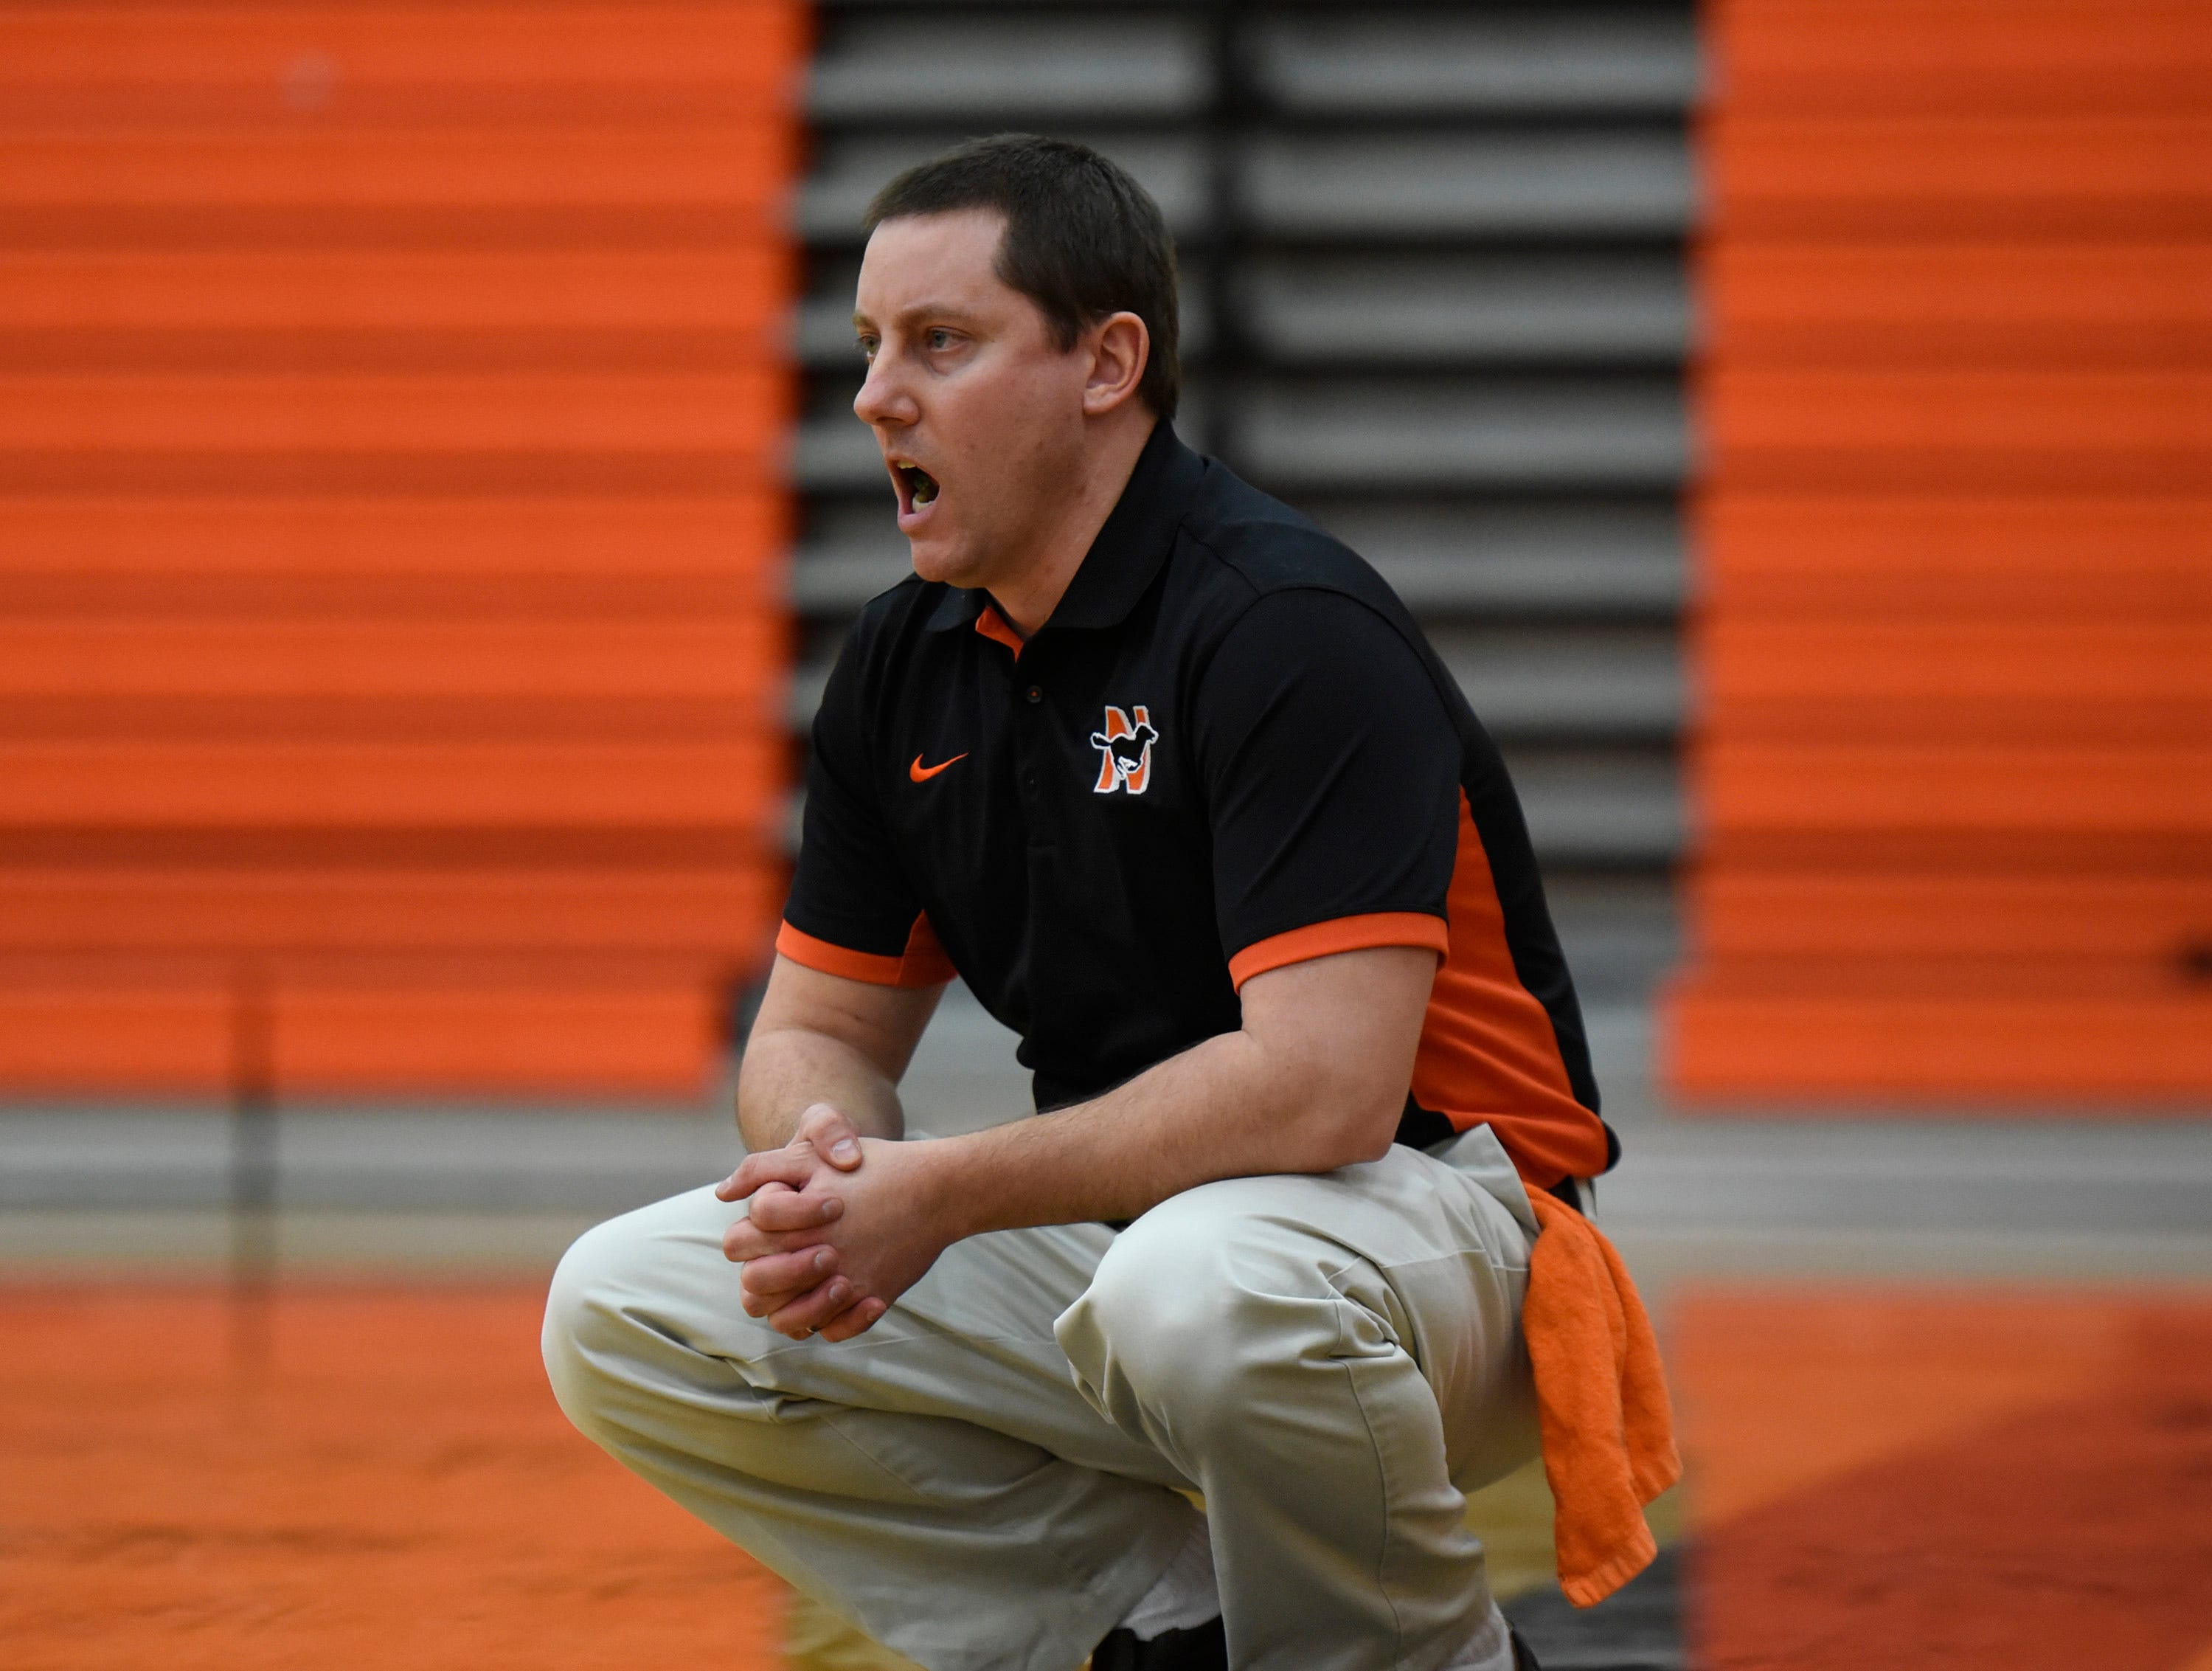 Northville's head coach Todd Gudith during a KLAA match up between the Mustangs and Eagles at Northville Jan. 8, 2019